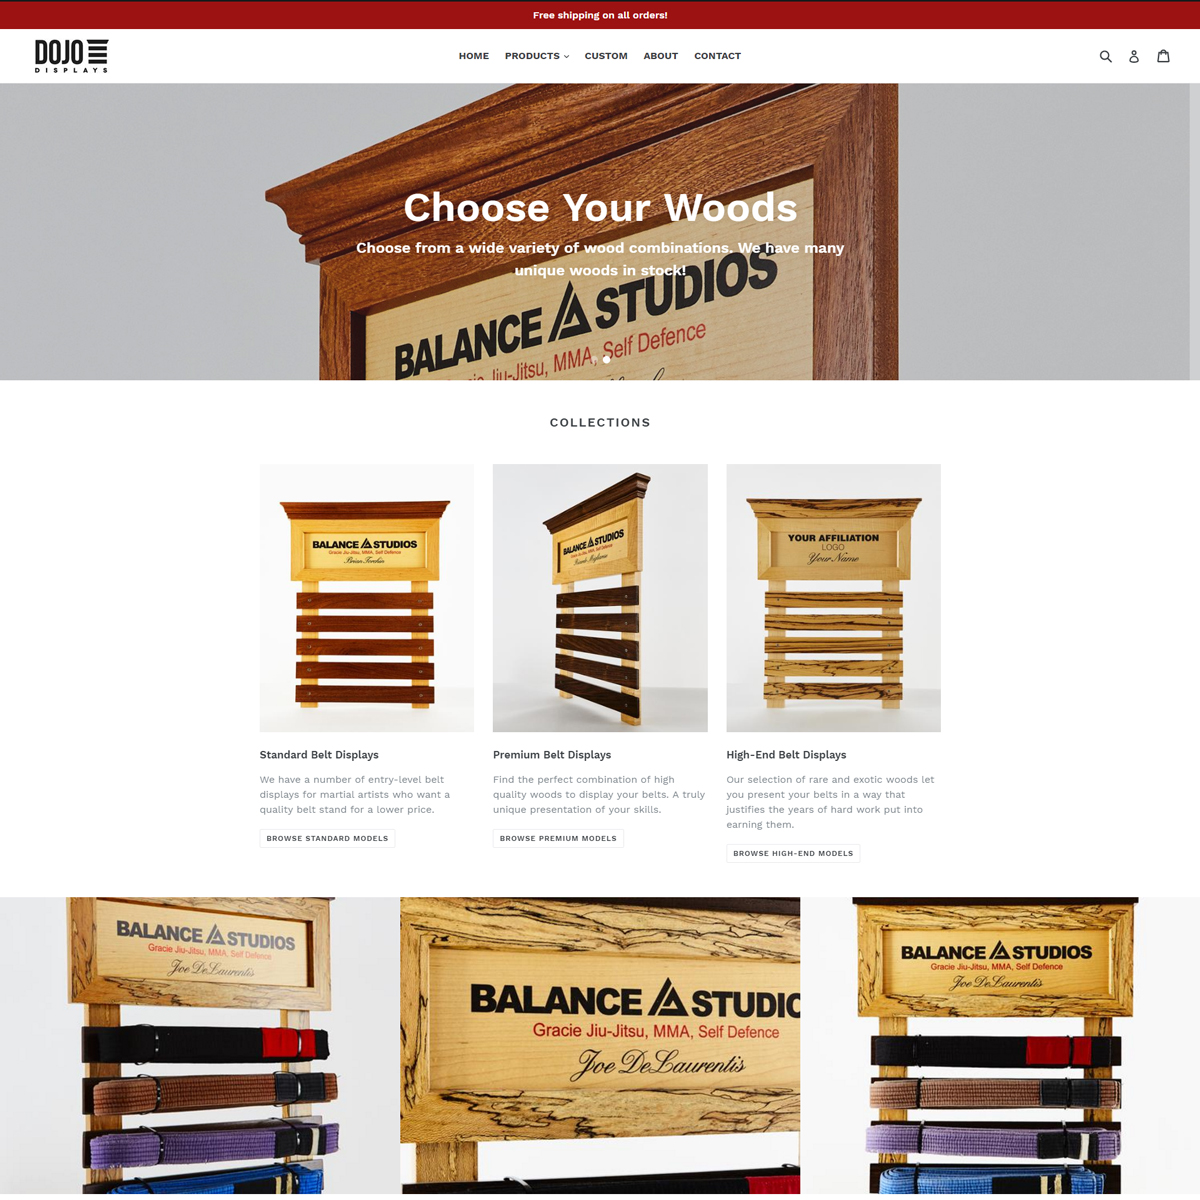 Dojo Displays | Cavallo Agency